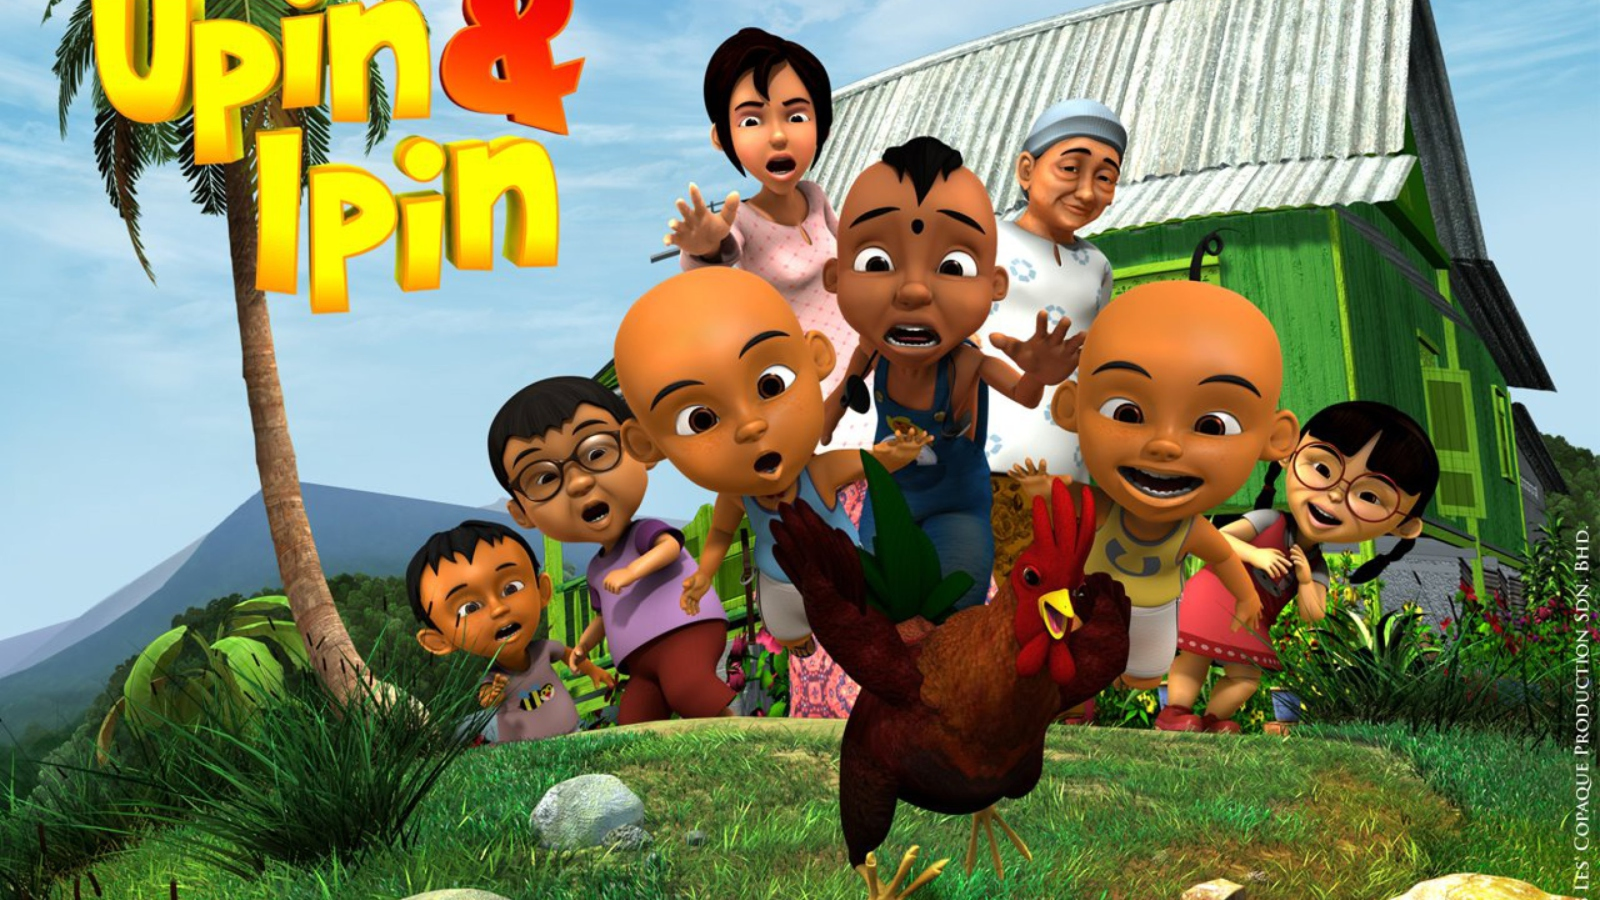 Upin & Ipin screenshot #1 1600x900